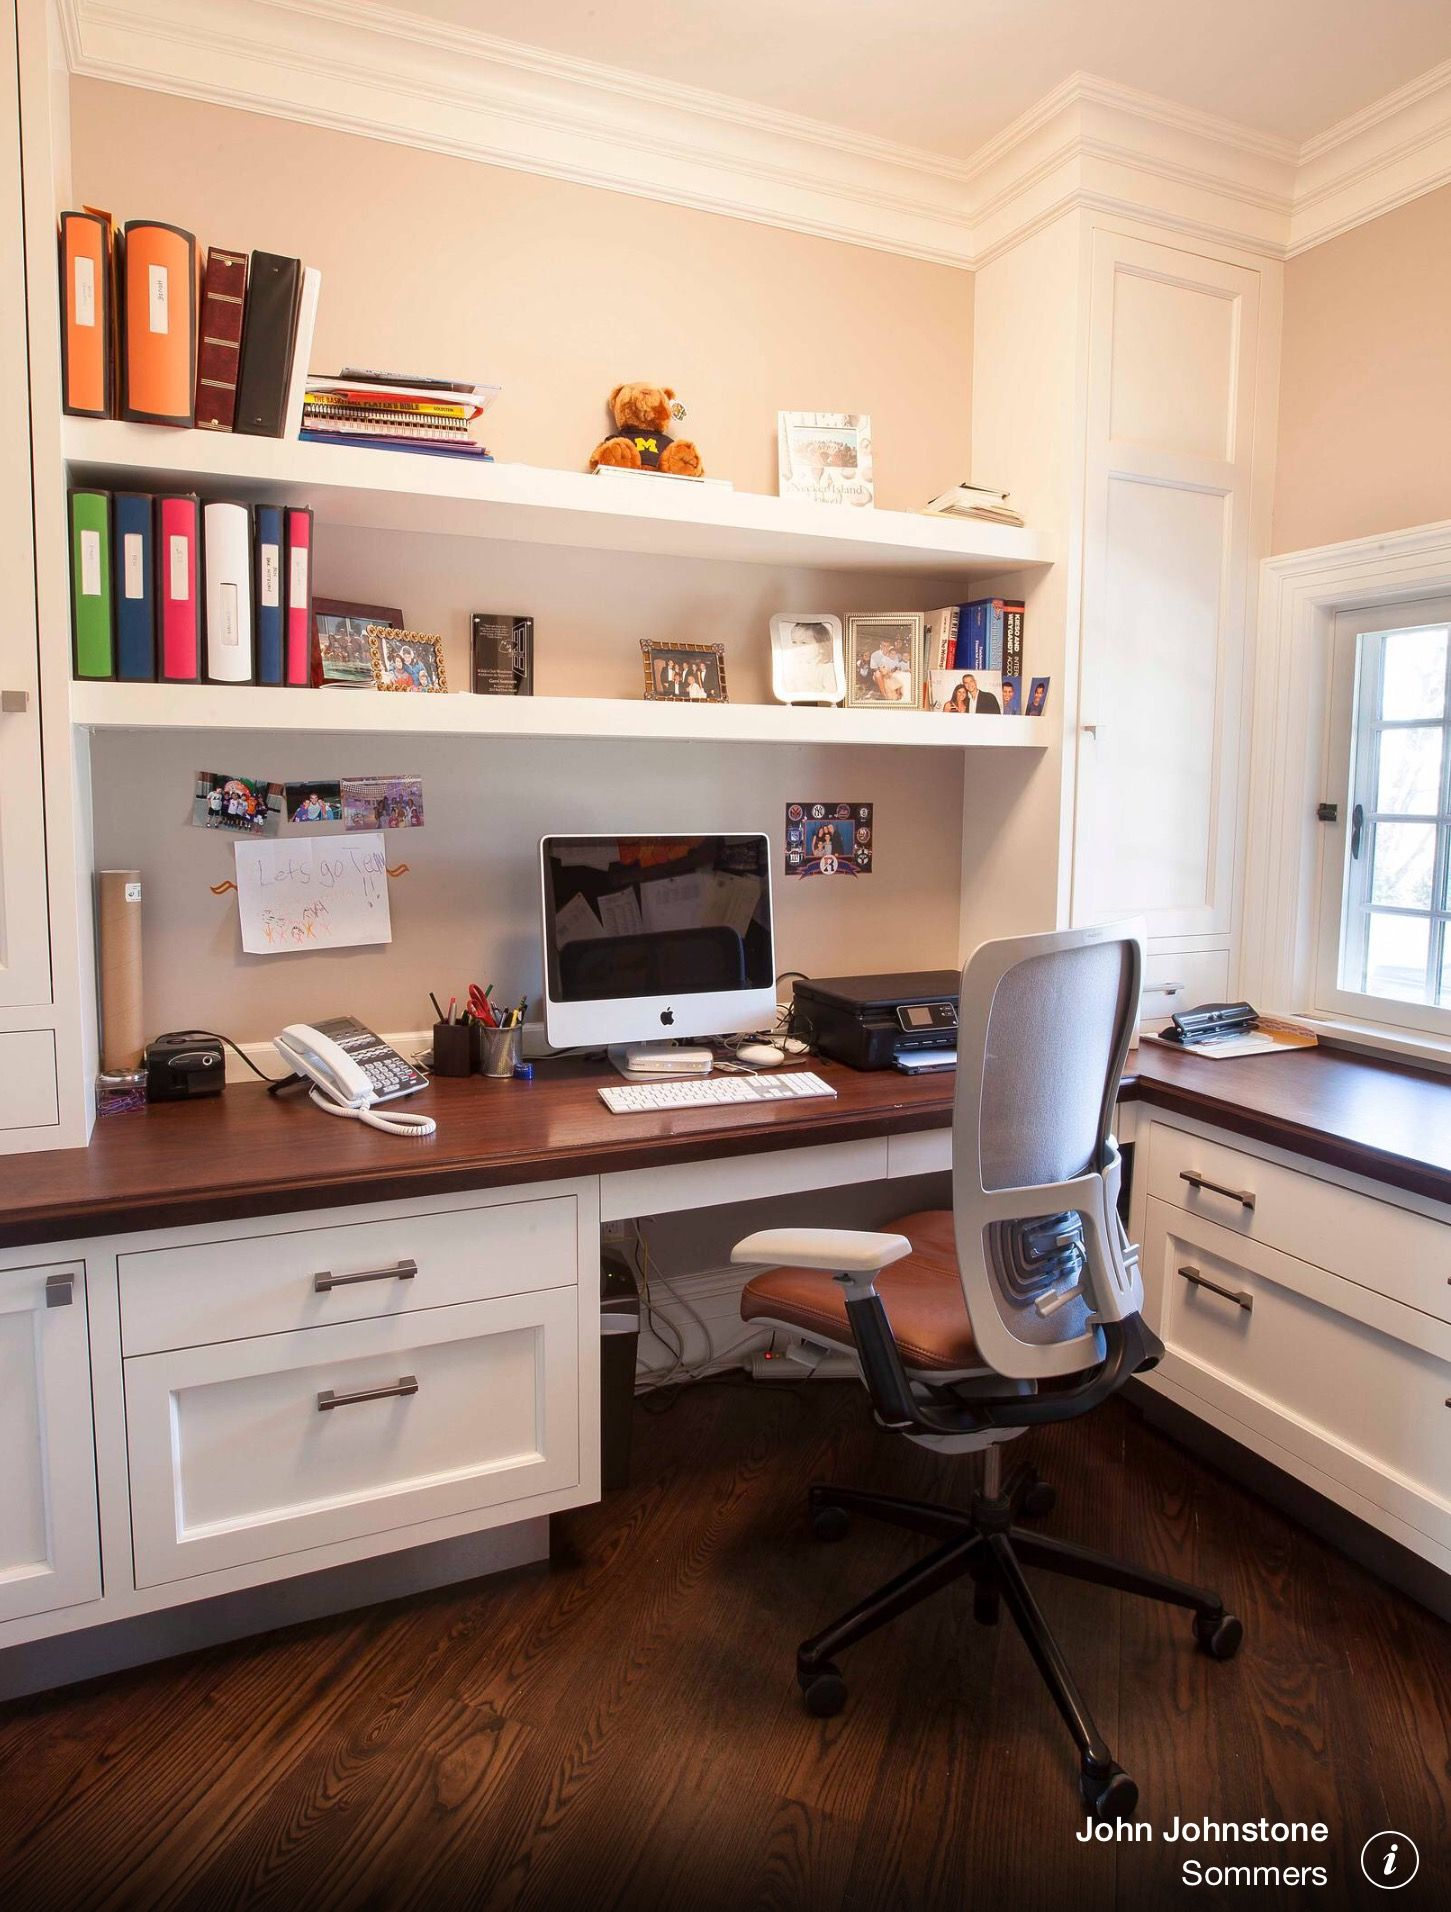 Basement Office Design Property pinasma on kids_room | pinterest | kids rooms and room